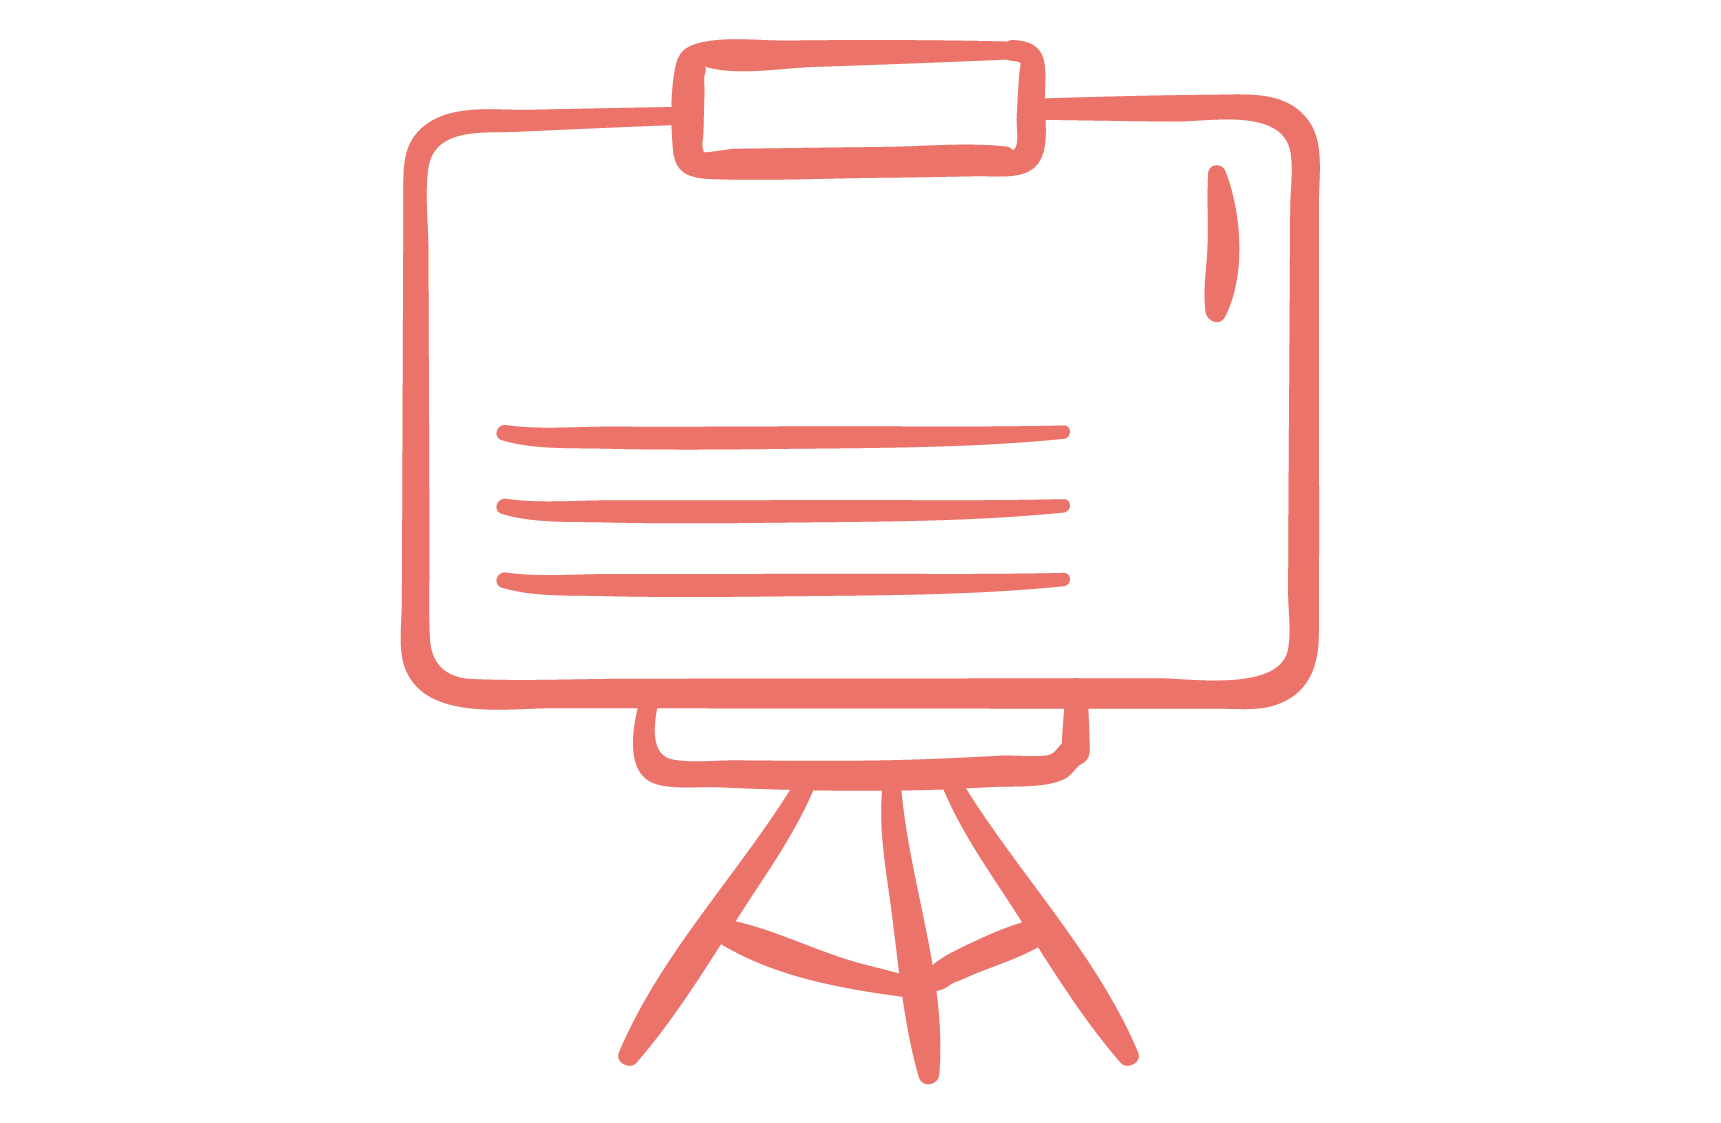 TRAINING AND CONSULTING - Educating and providing a digital voice to those who need it, is something we take a great deal of pride in. We are privileged enough to be able to provide training through specialist digital storytelling and digital media workshops.